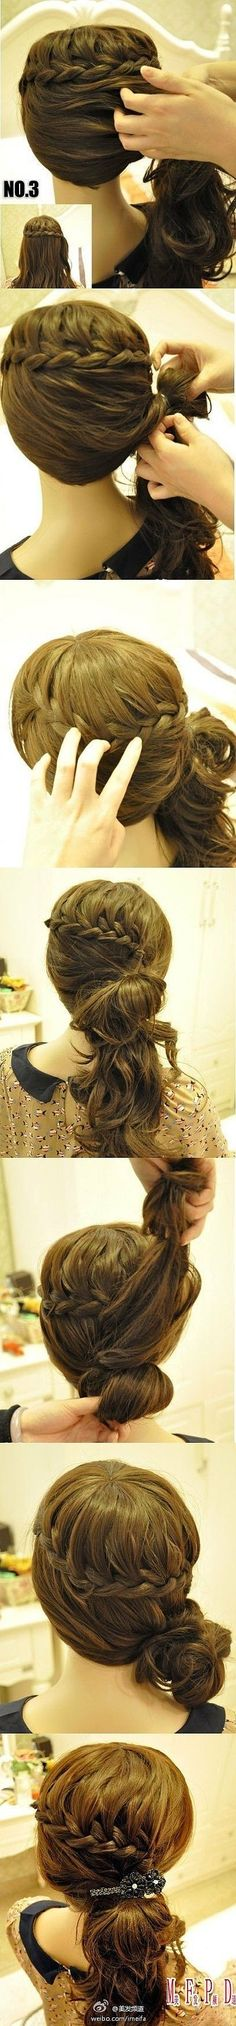 Top Amazing Bridal Wedding Hairstyles Trends & looks You Should Must Try on Your Big Day (9)